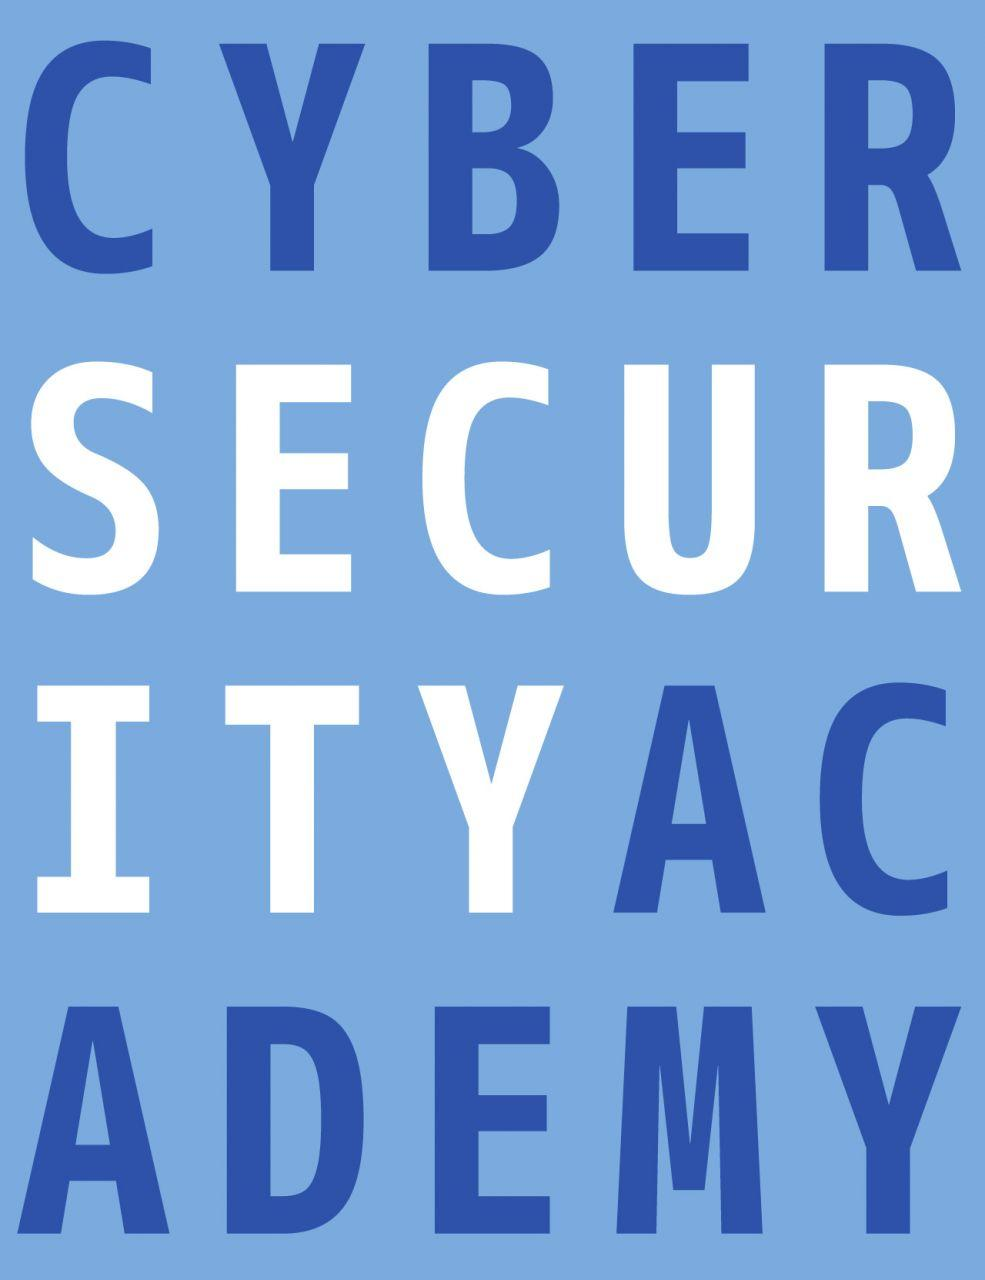 Business Case for Cyber Security Academy